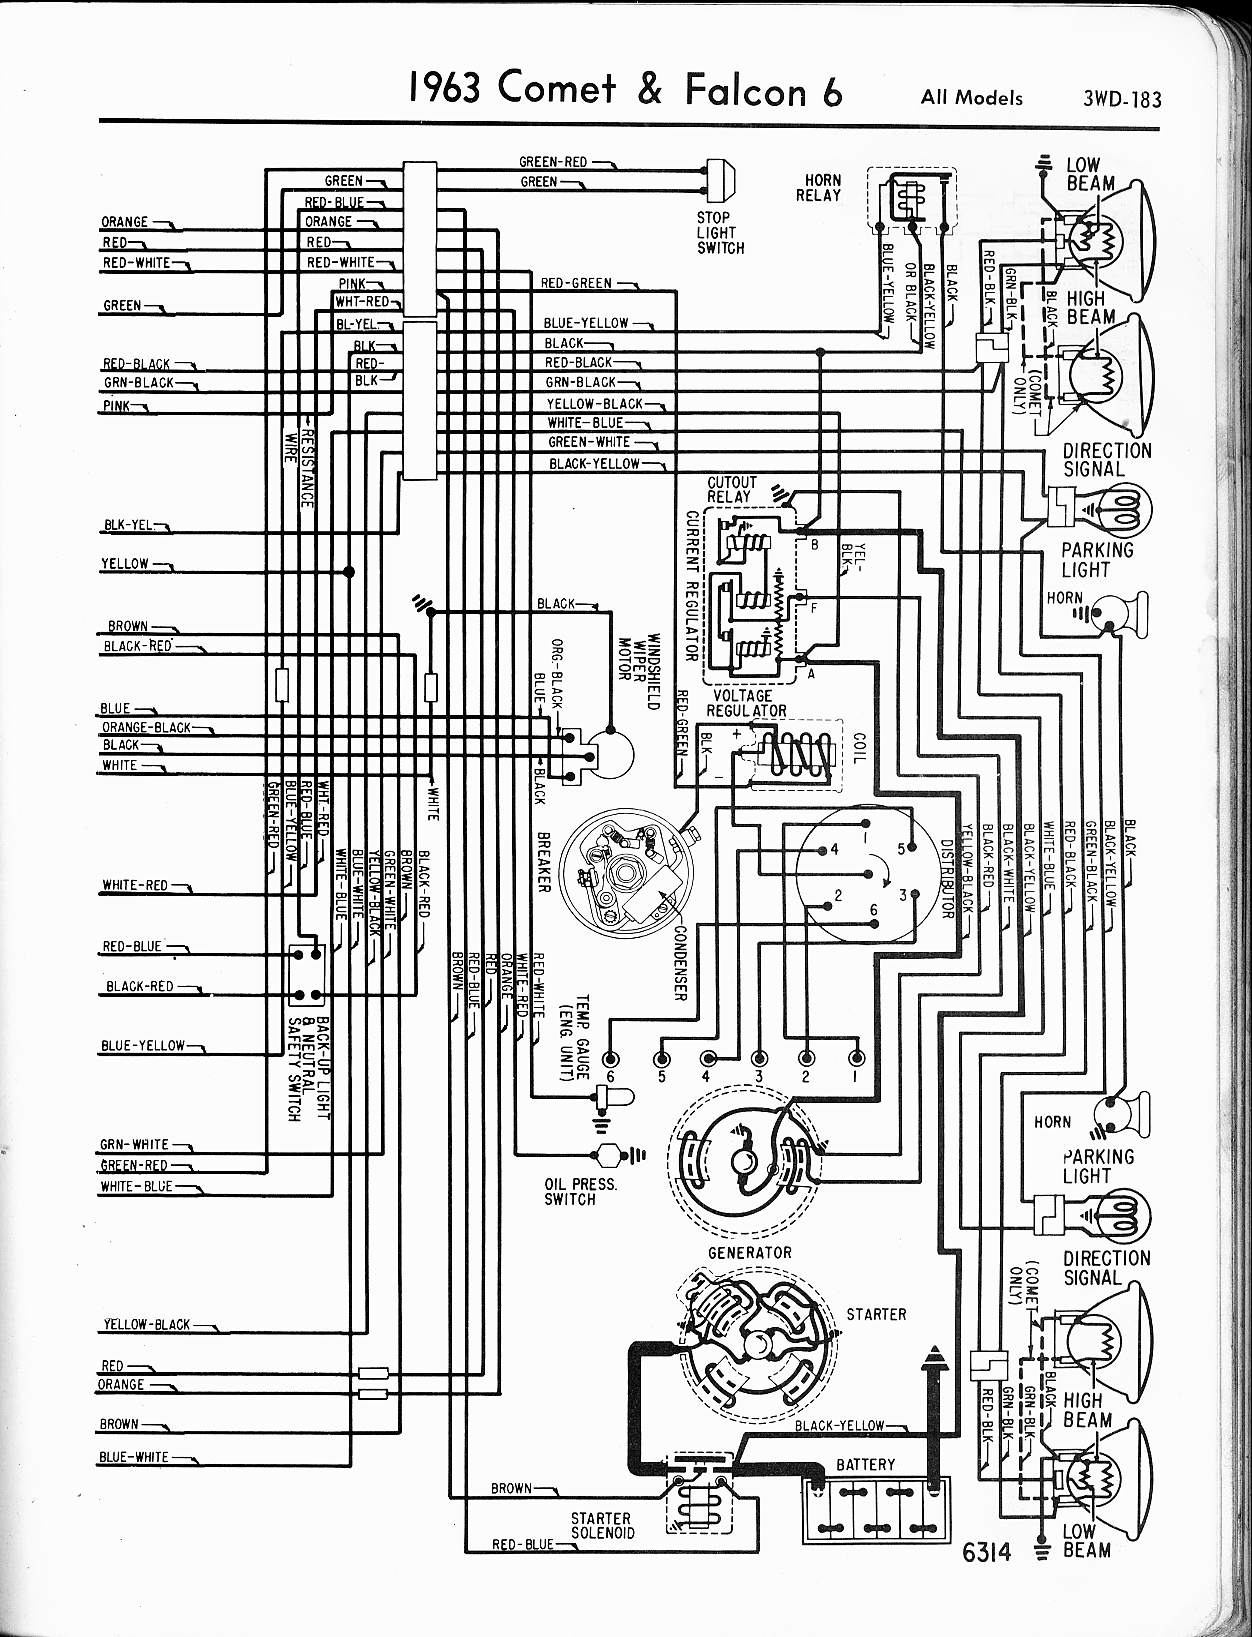 MWire5765 183 1963 ranchero wiring diagram, anyone got one? ford muscle forums 1964 ford galaxie 500 wiring diagram at edmiracle.co